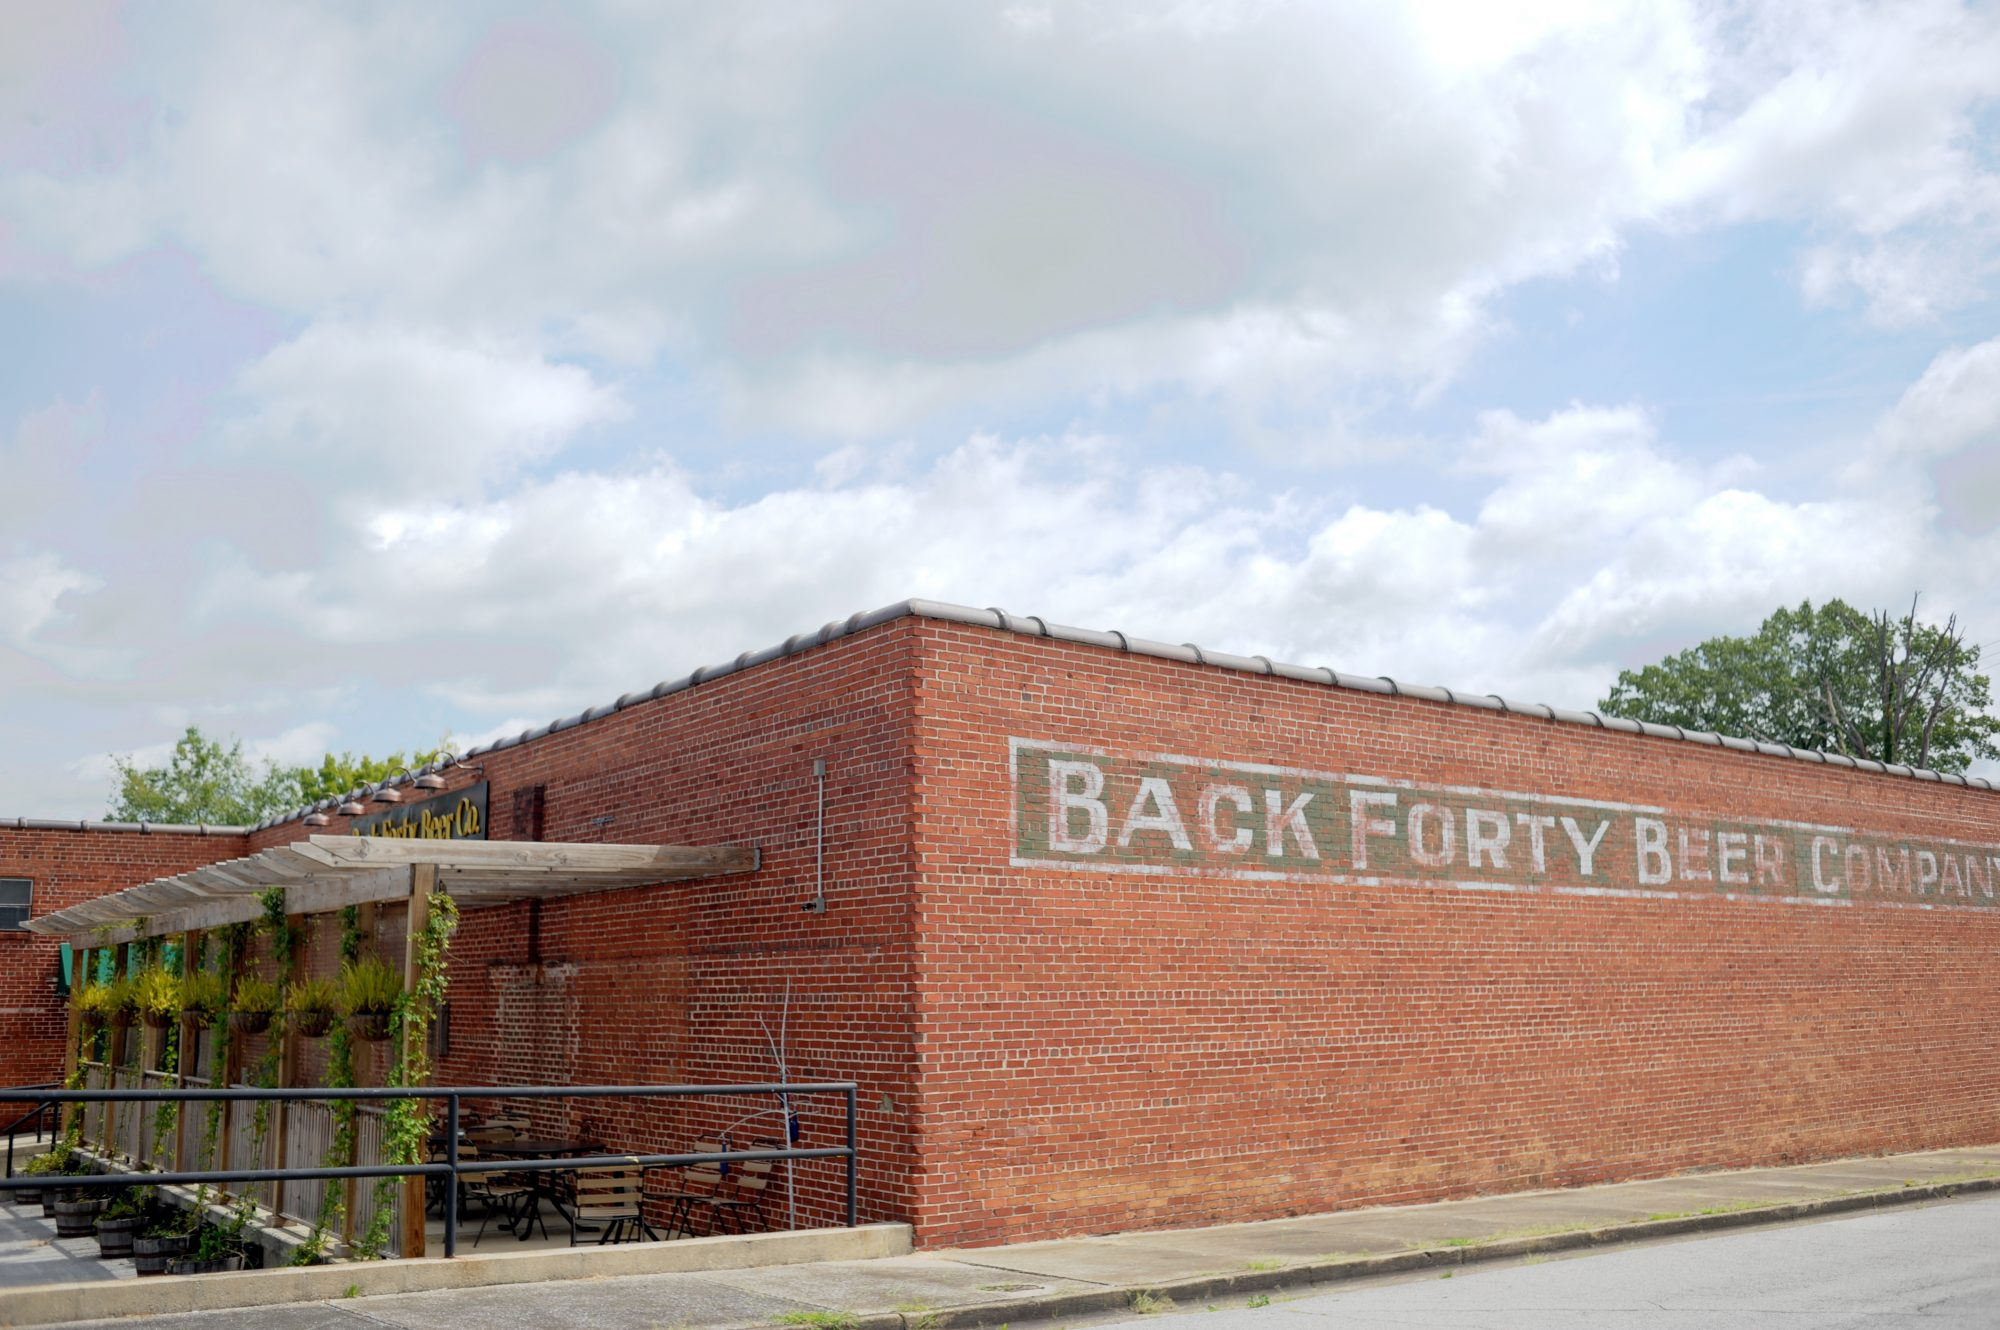 Back Forty Beer Company (Gadsden, Alabama)